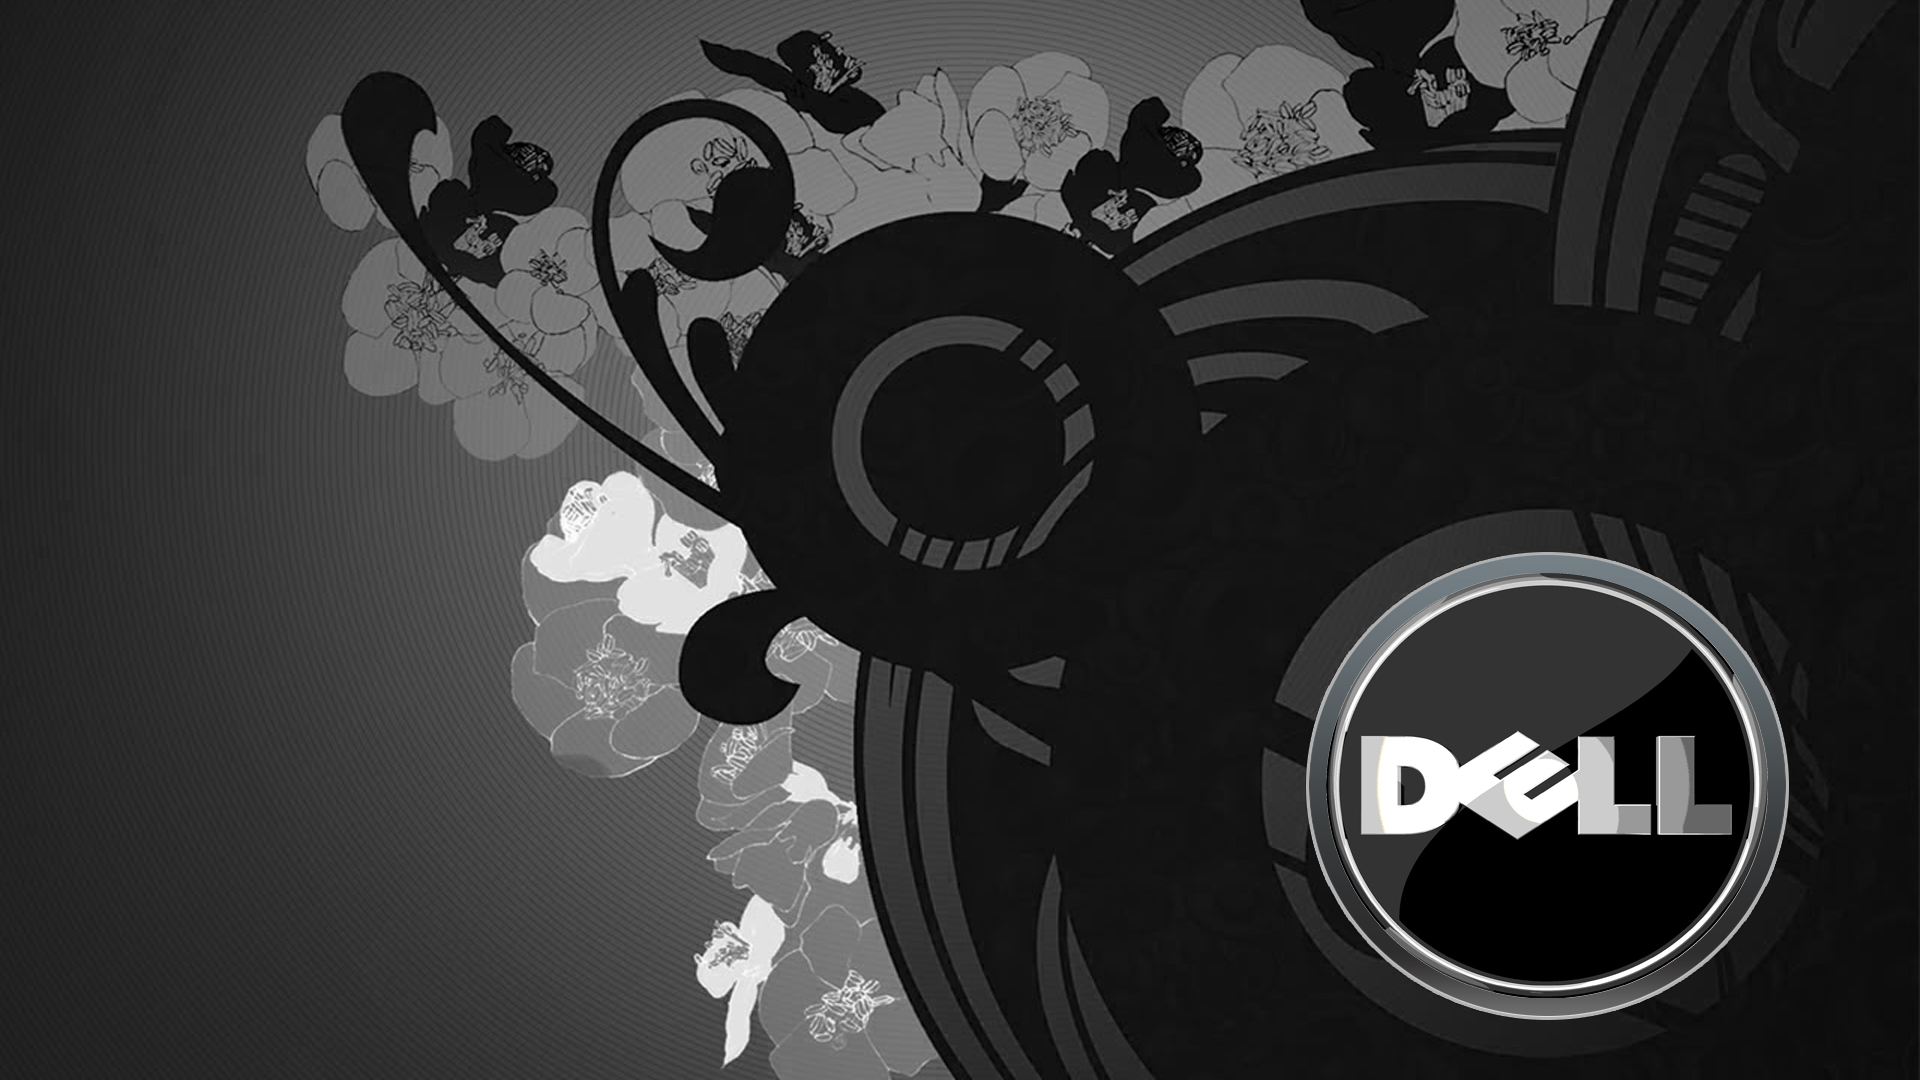 48] Dell Inspiron Wallpapers Download on WallpaperSafari 1920x1080